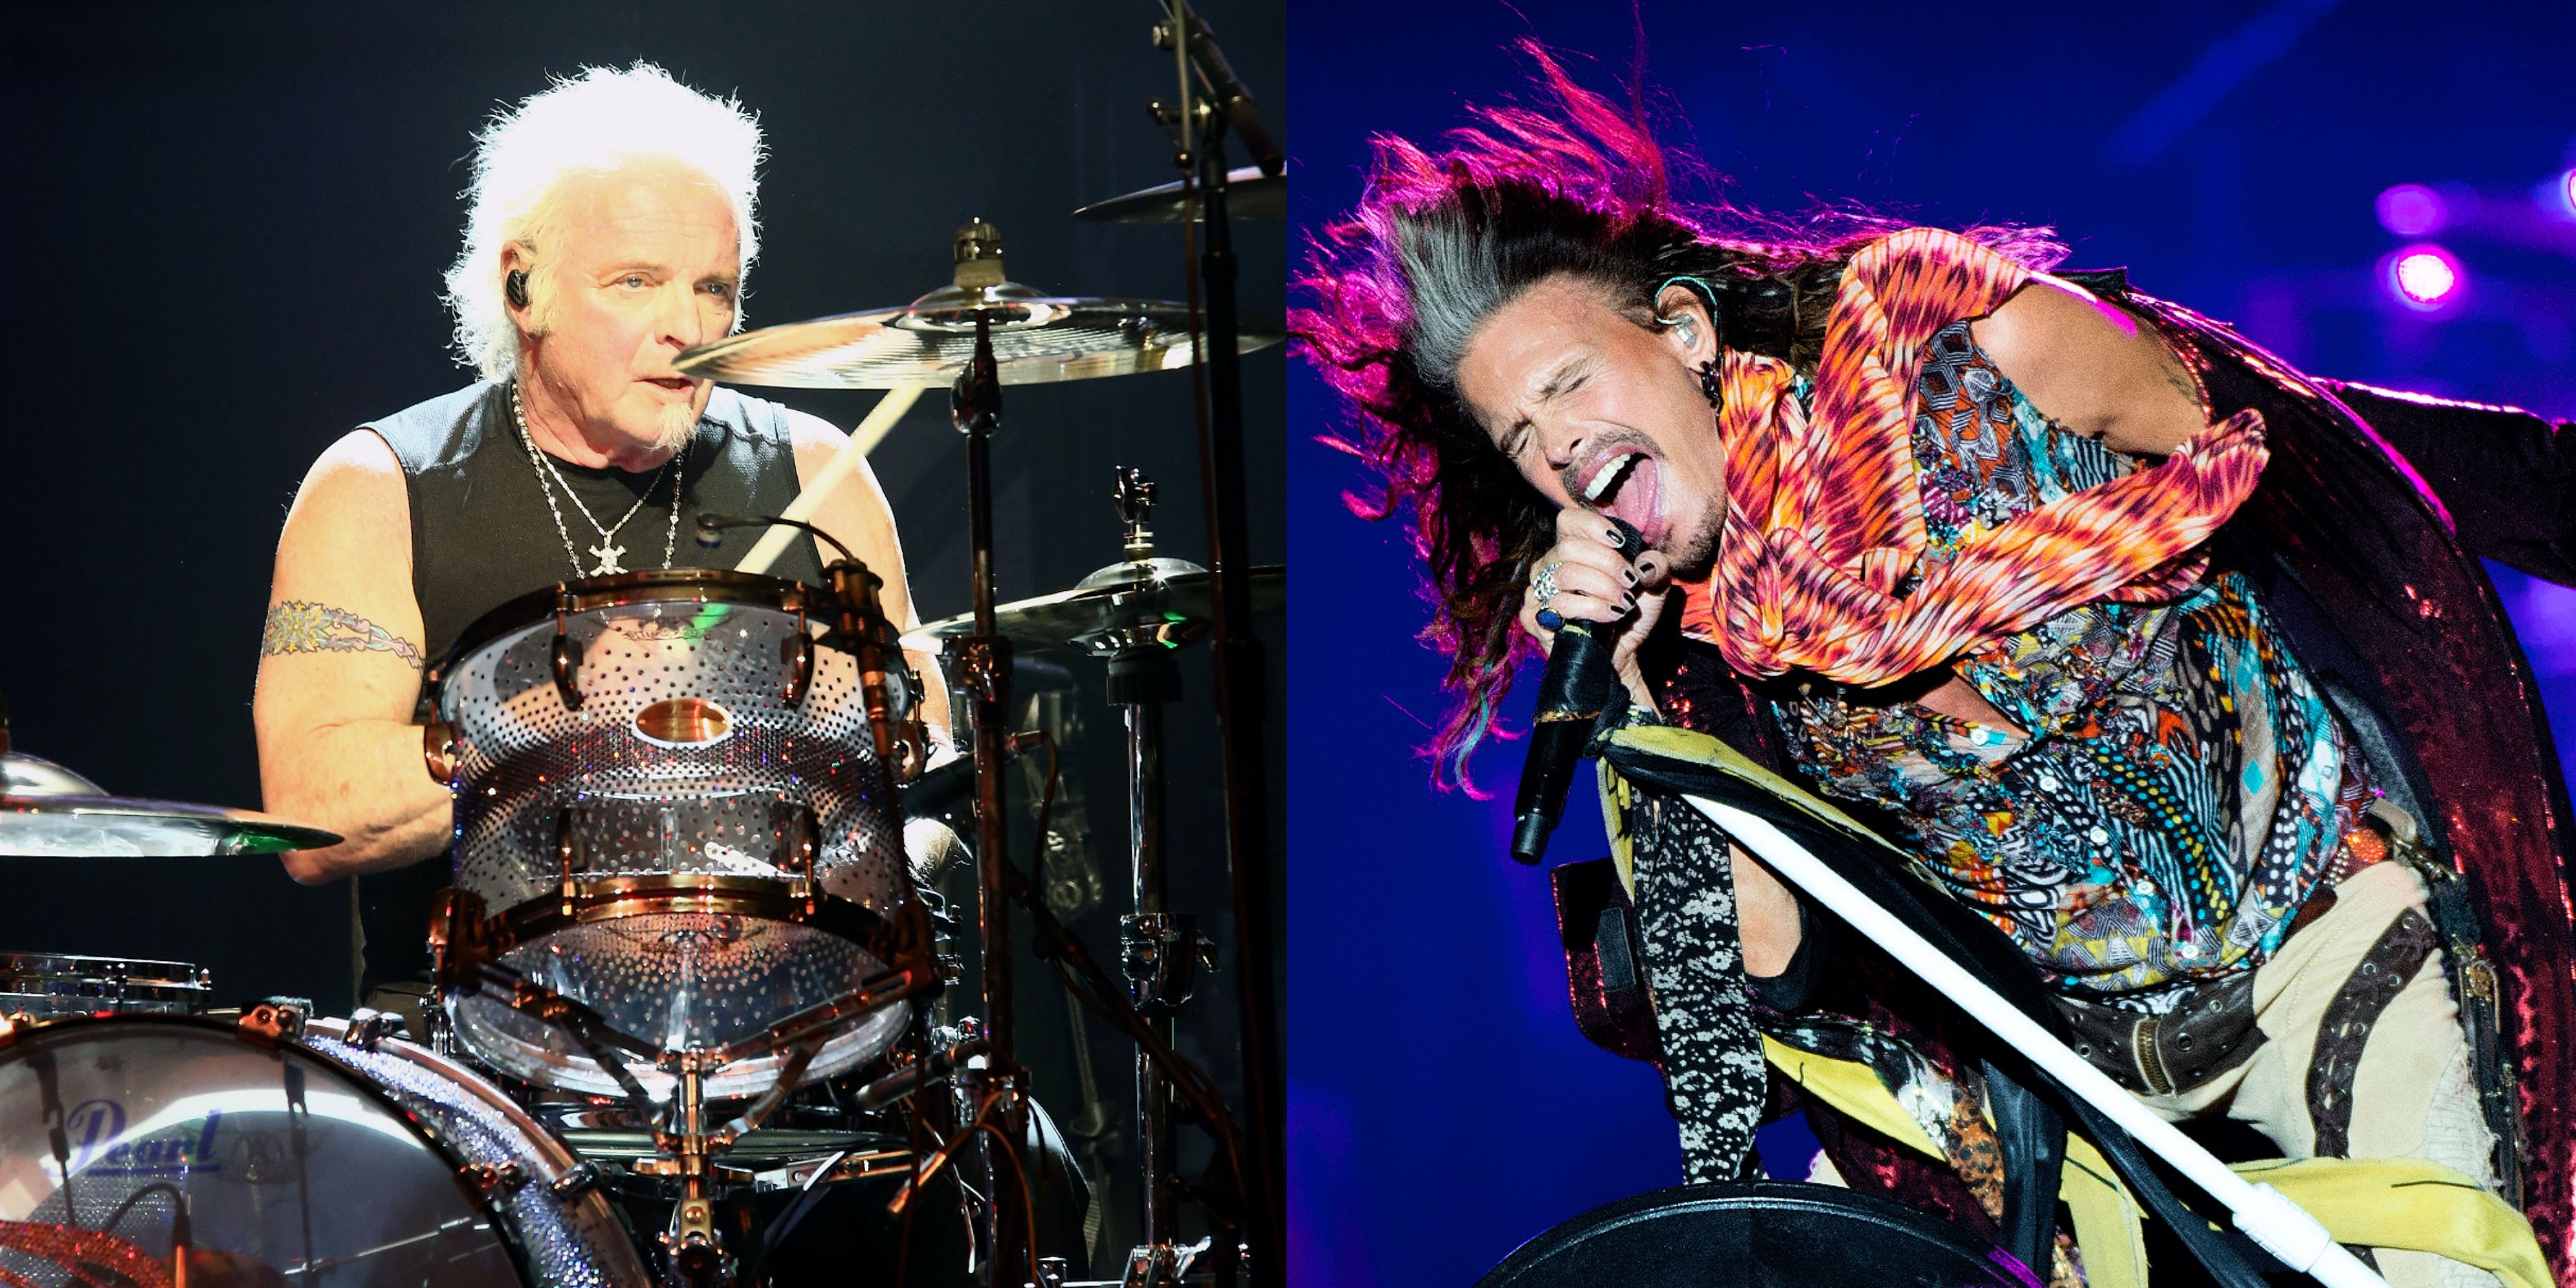 What Could Be More Aerosmith Than Their Current Feud With Founding Member Joey Kramer?